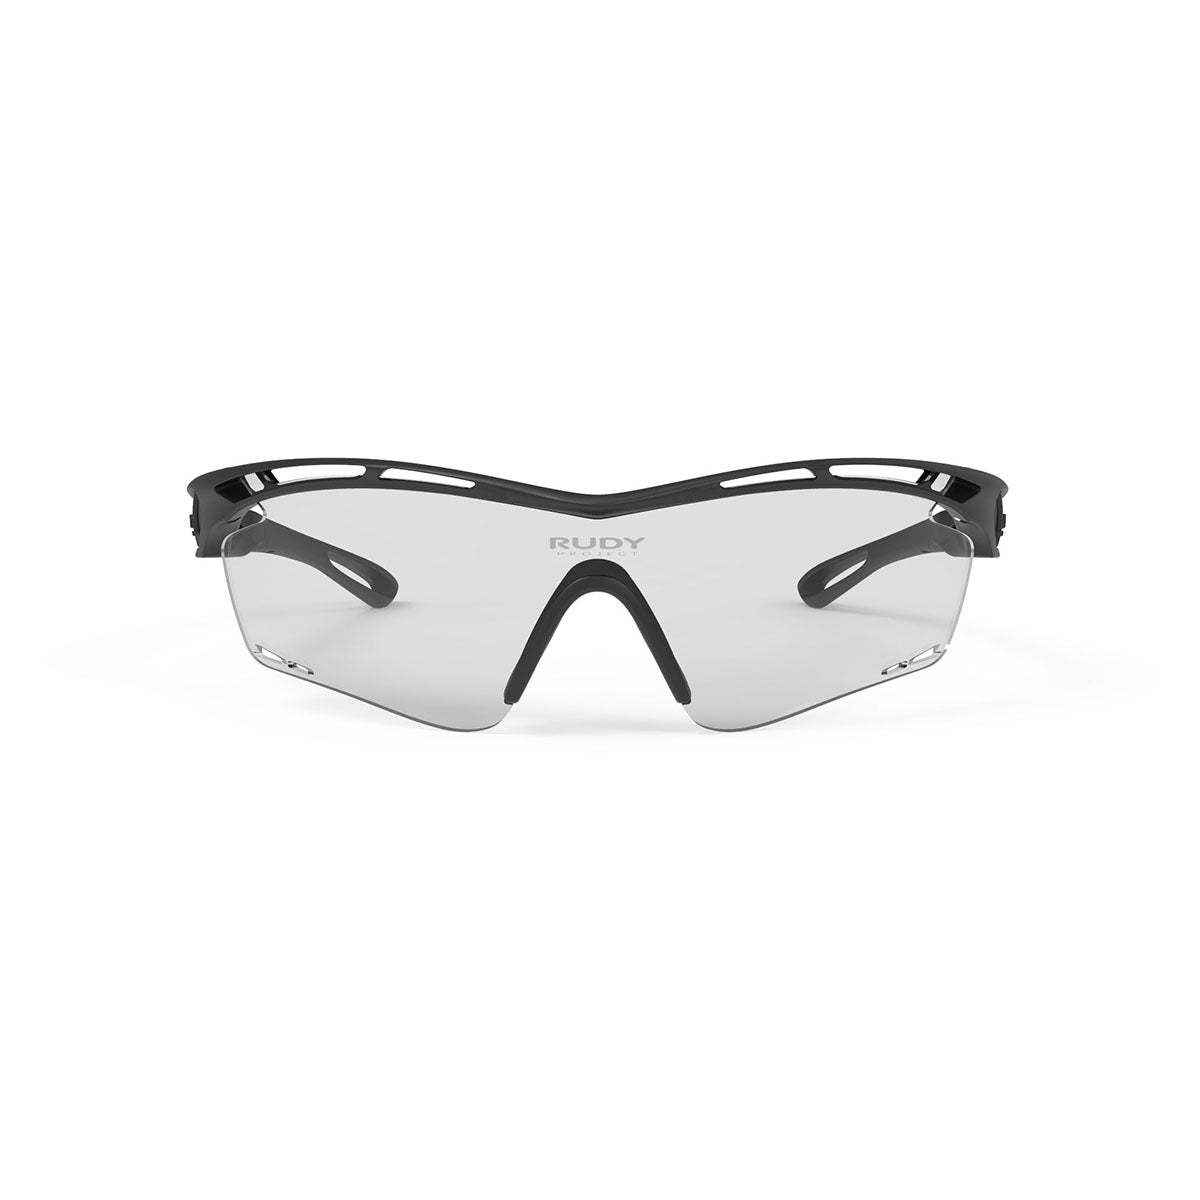 Rudy Project - Tralyx - frame color: Matte Black - lens color: ImpactX-2 Photochromic Clear to Black - photo angle: Front View Variant Hover Image